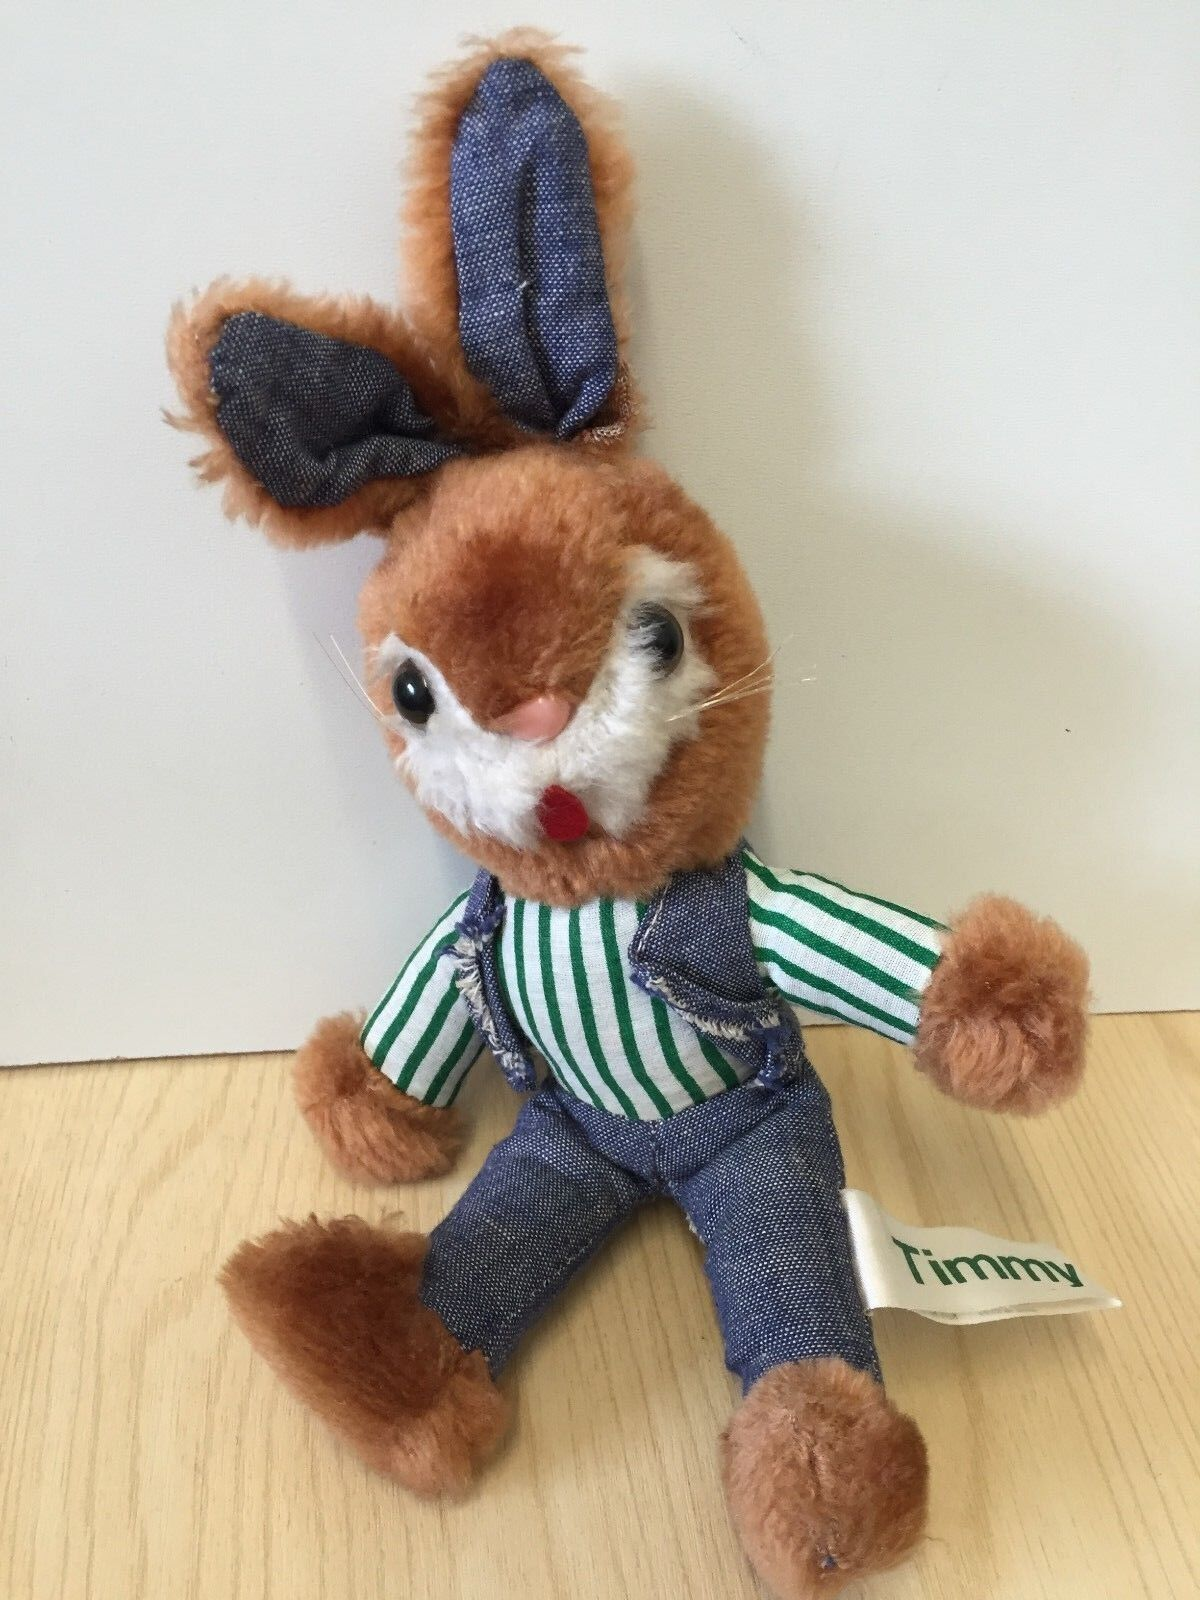 RARE Vintage Russ 1980 Timmy Rabbit Soft Plush Toy 25cm Item No. 203